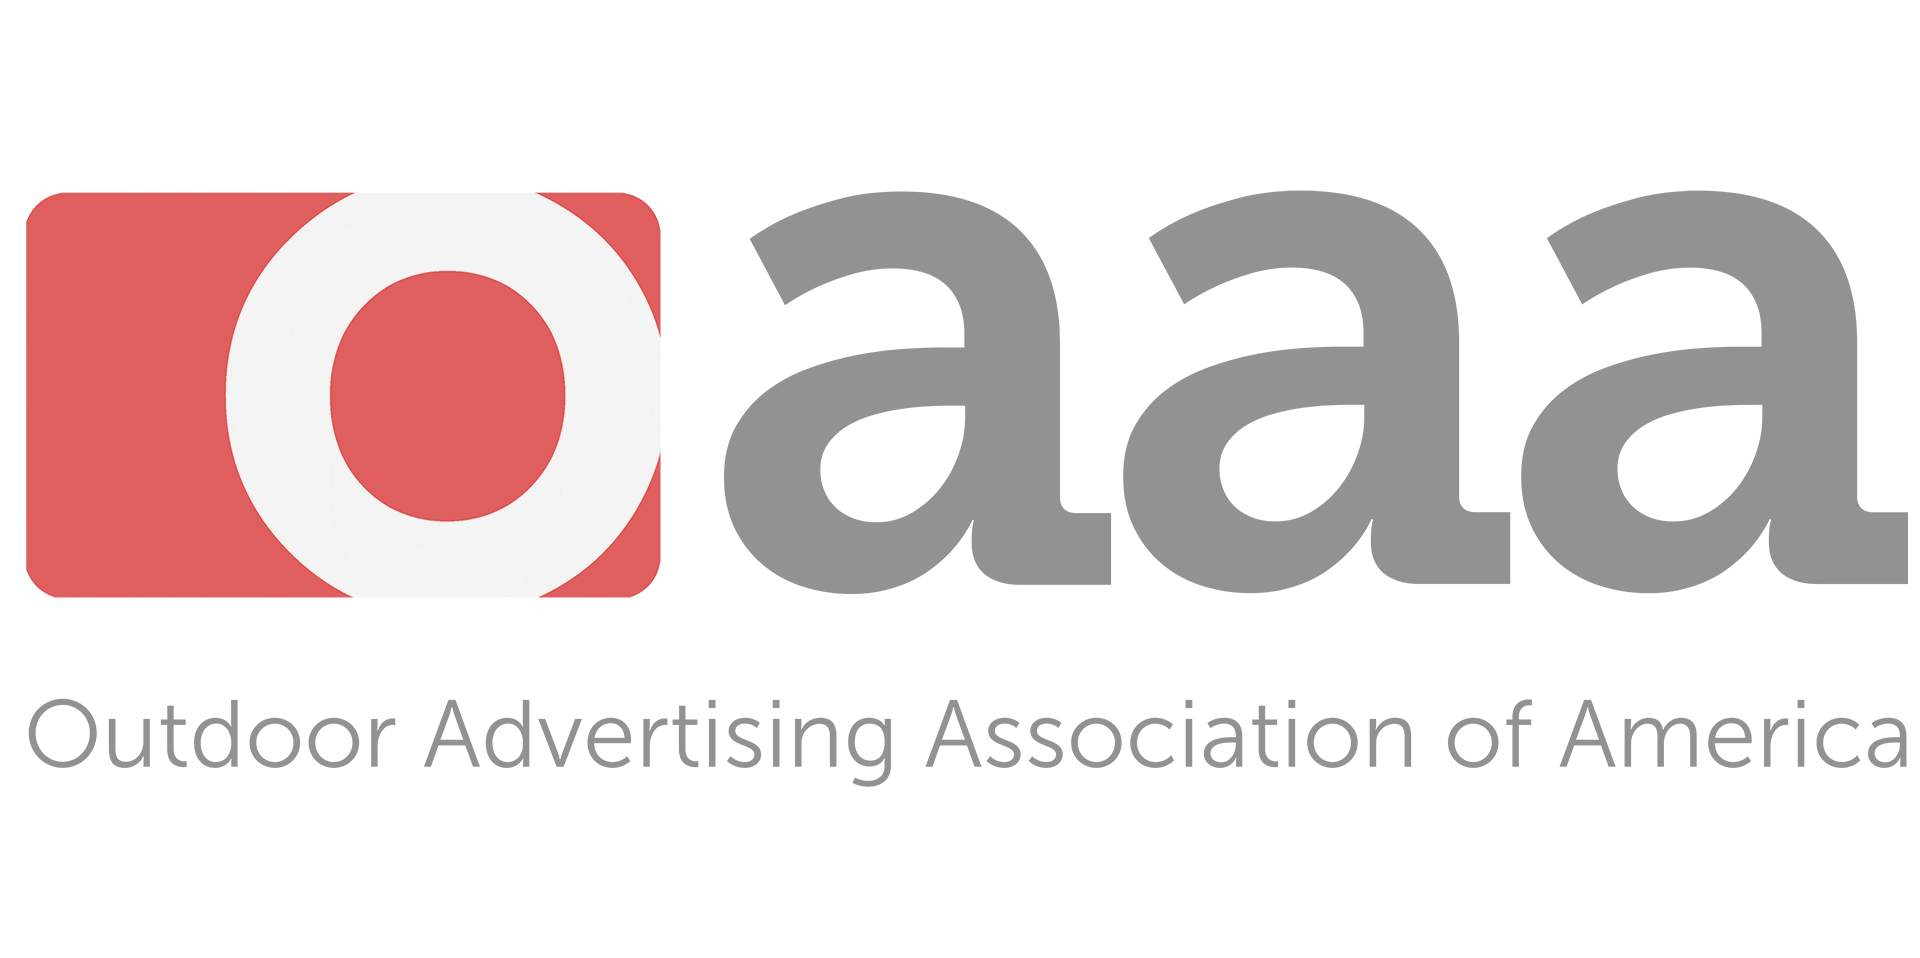 Accretive Media joins Outdoor Advertising Association of America (OAAA) – July 2018